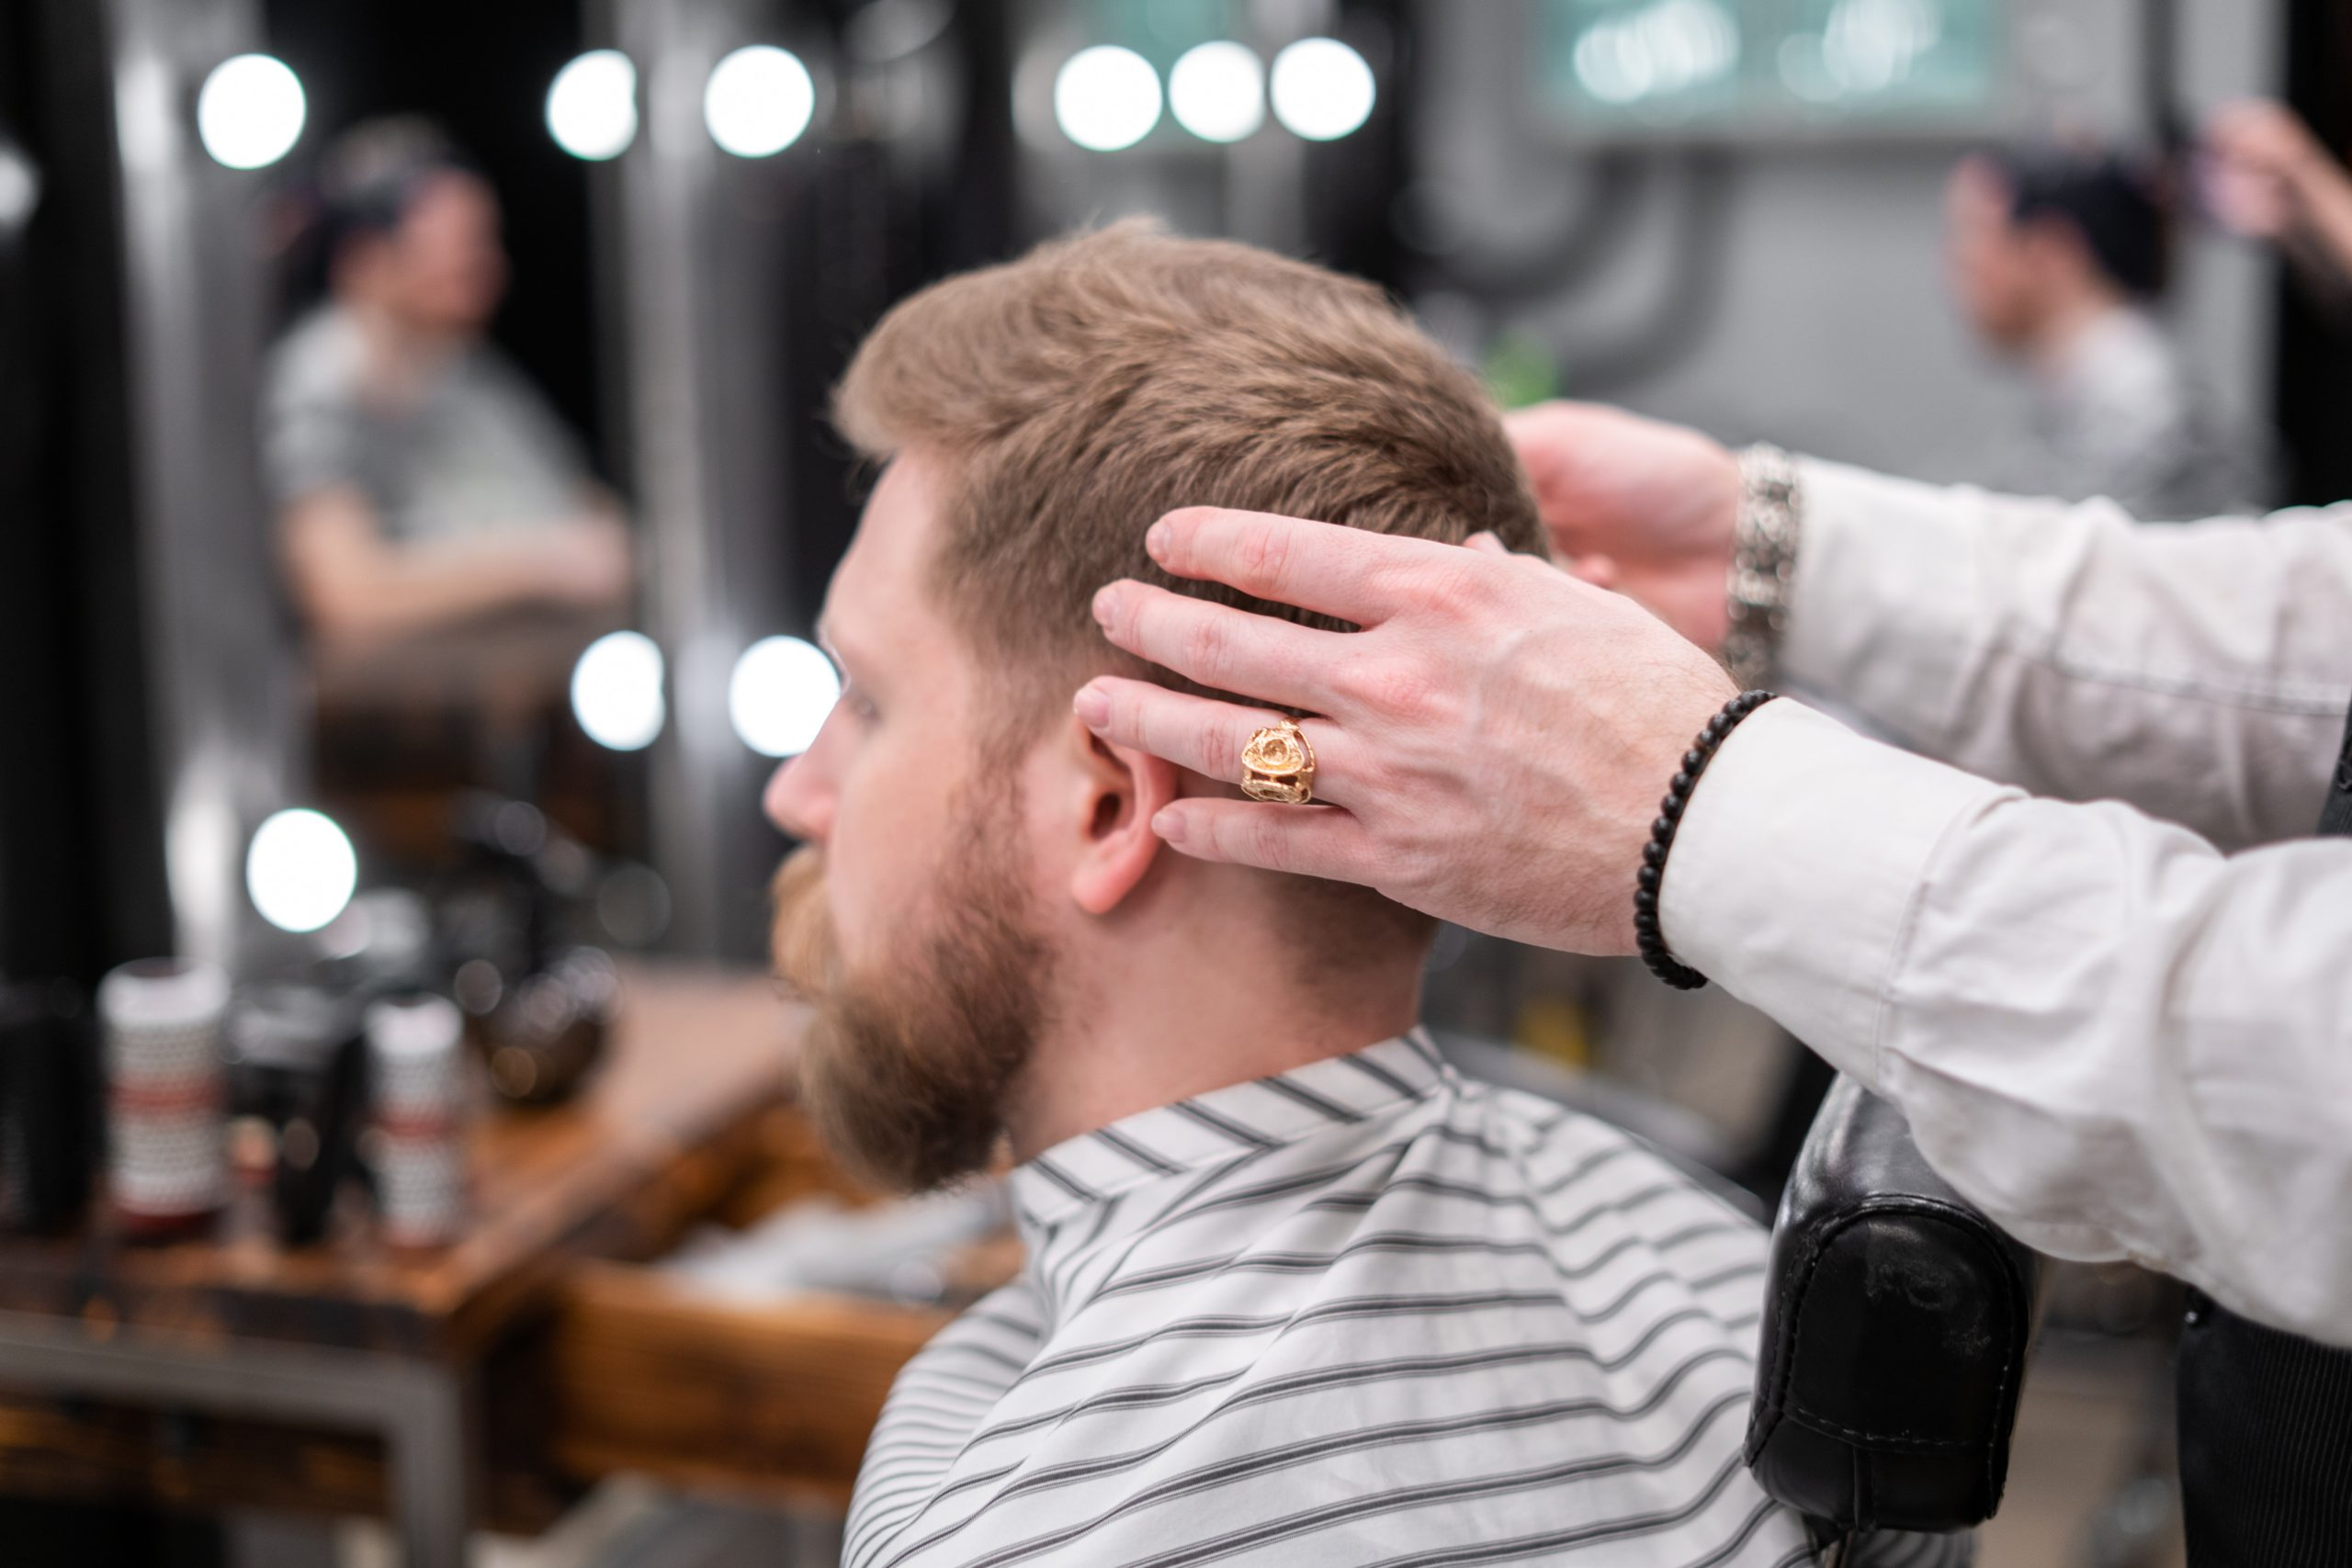 man with blonde hair and beard getting haircut